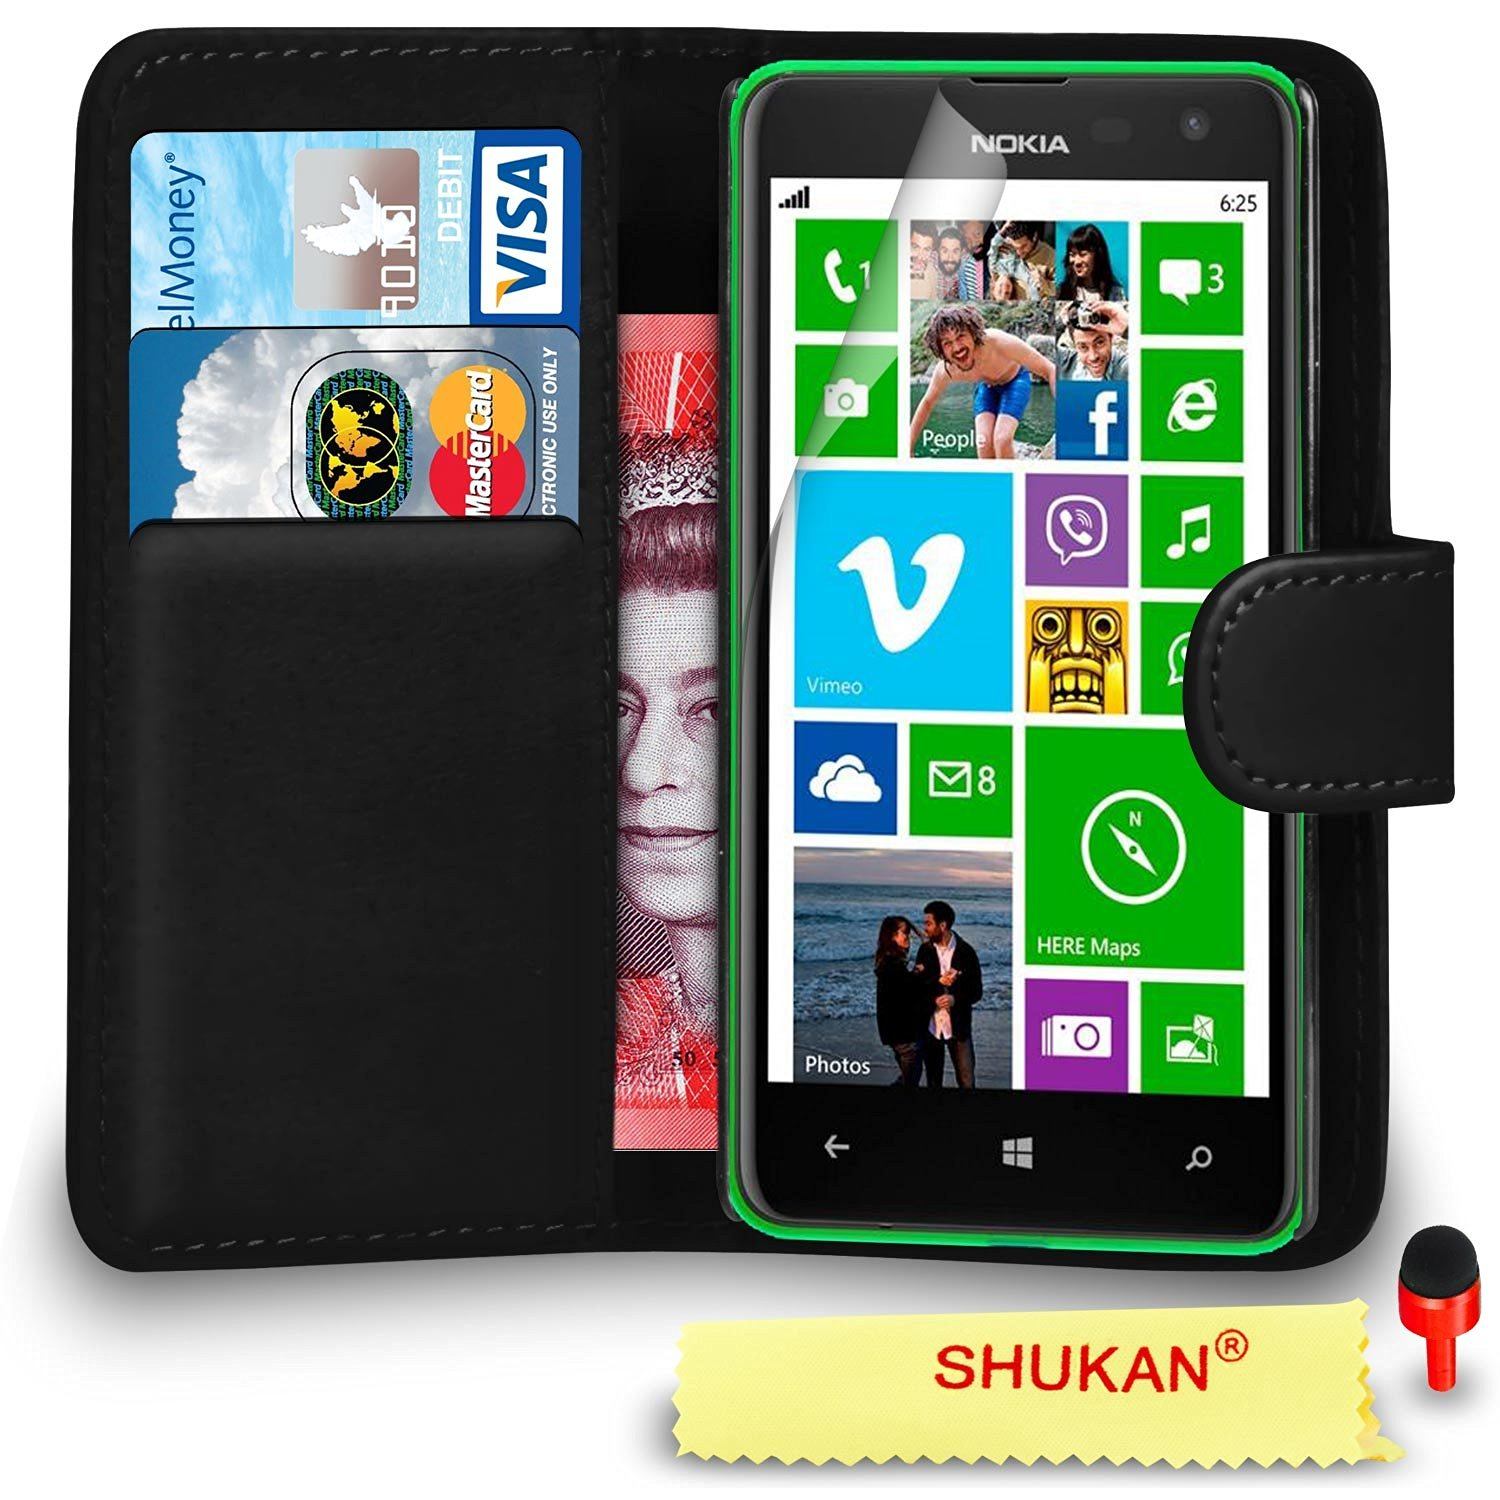 Nokia Lumia 625 Premium Leather Black Wallet Flip Case Cover PouchRED DS+ Screen Protector & Polishing Cloth SVL0 BY SHUKAN®, (WALLET BLACK)